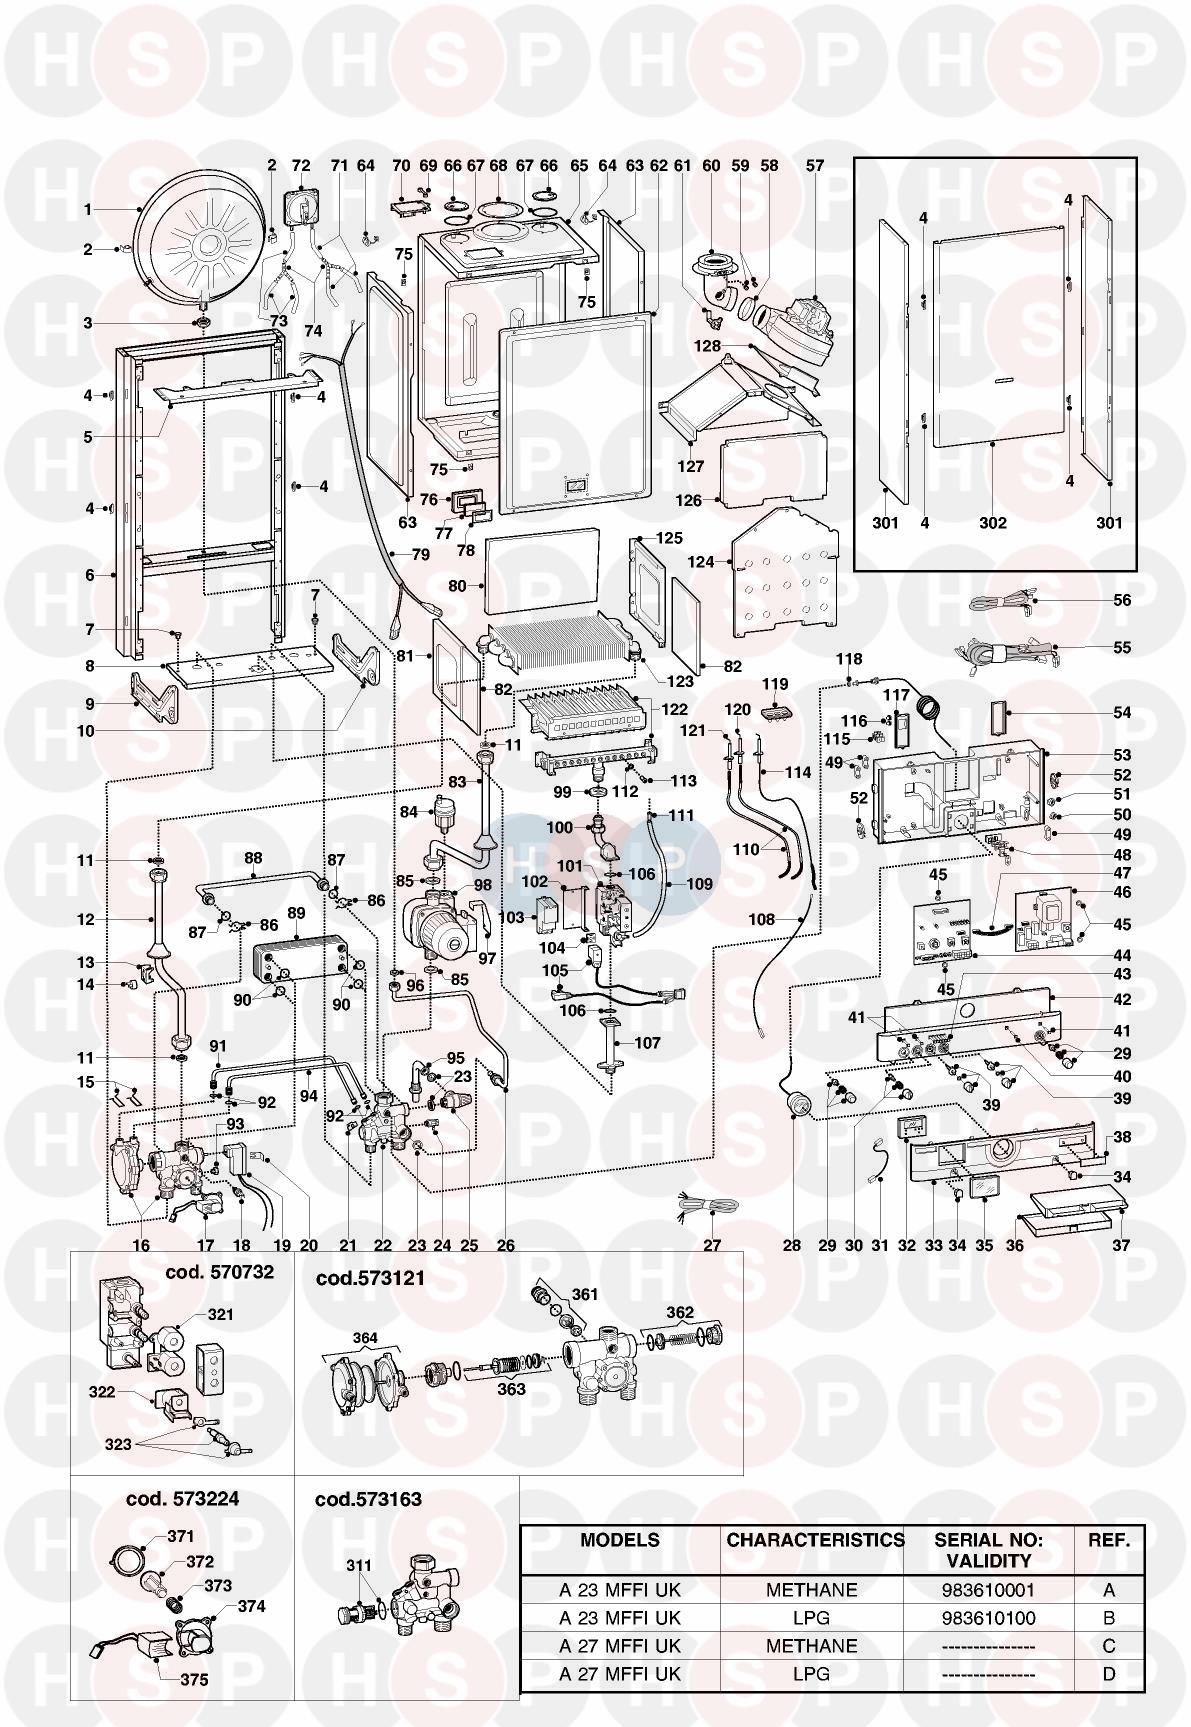 Ariston EUROCOMBI A23 MFFI EDITION2 (EXPLODED VIEW